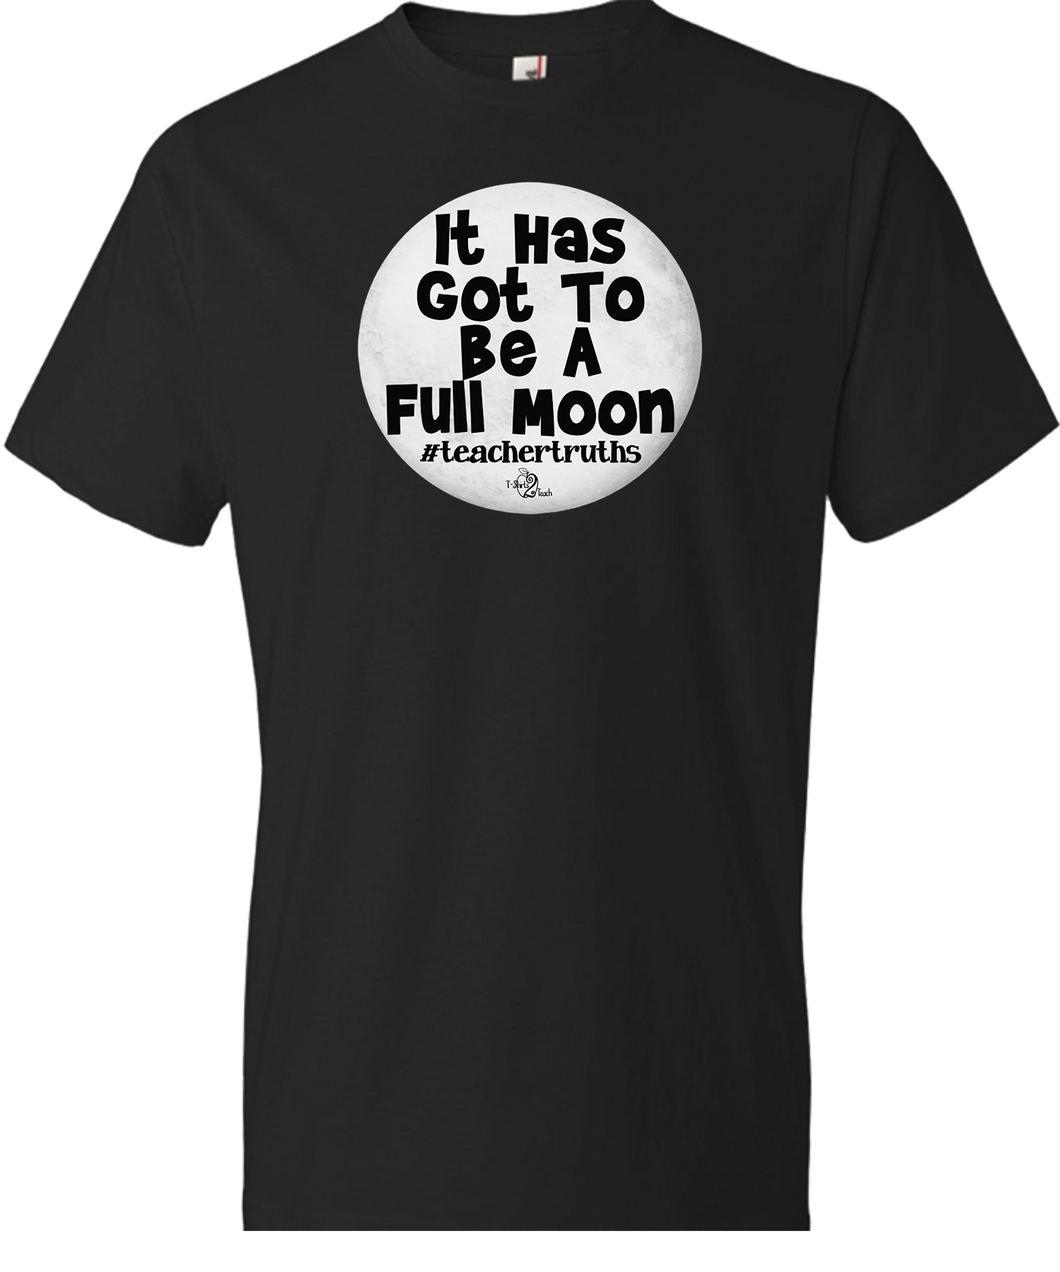 It Has Got To Be a Full Moon Tee